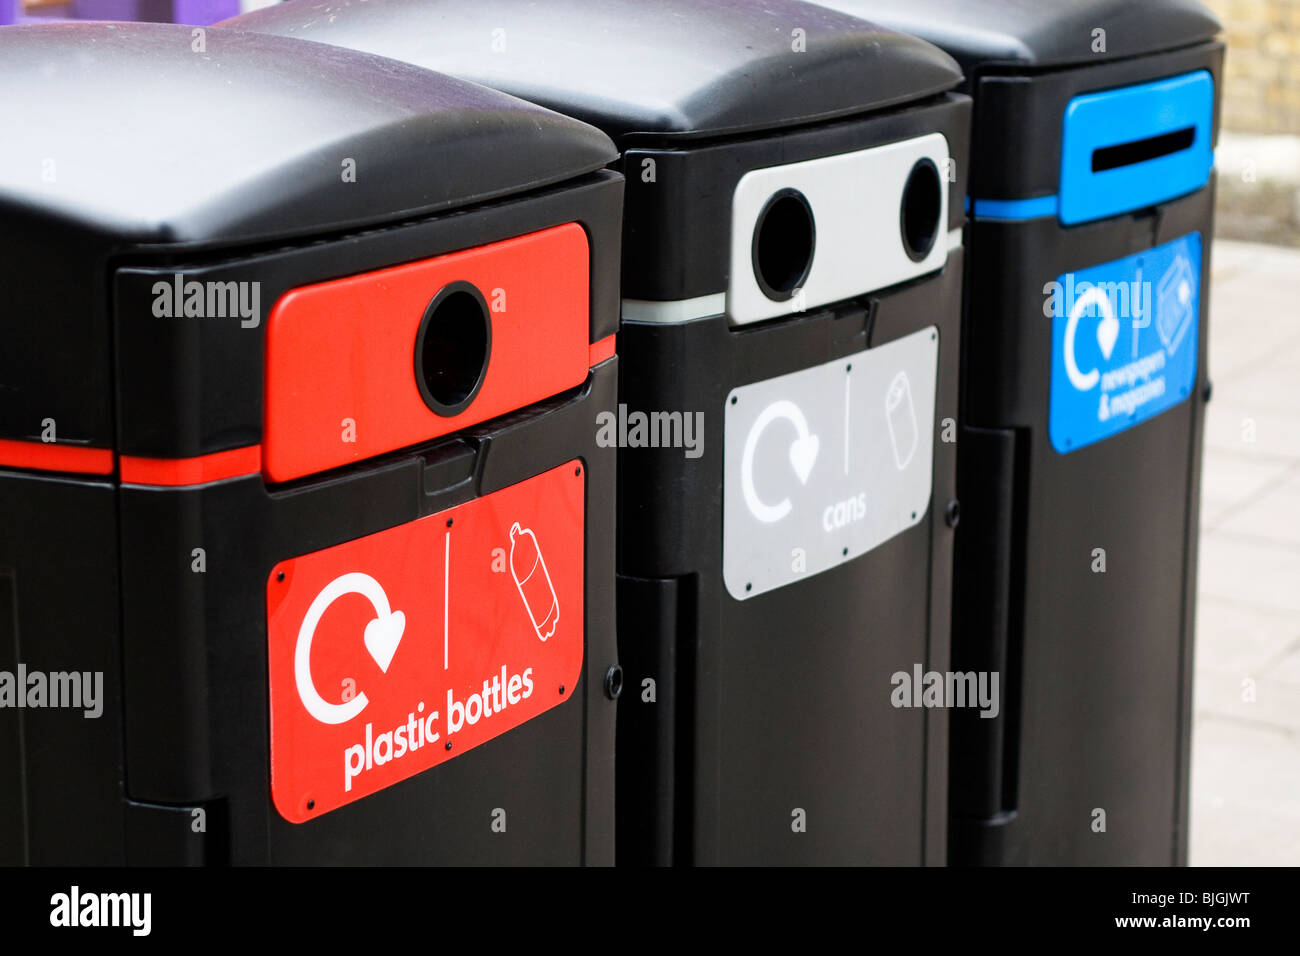 A row of recycling bins in a town centre Stock Photo